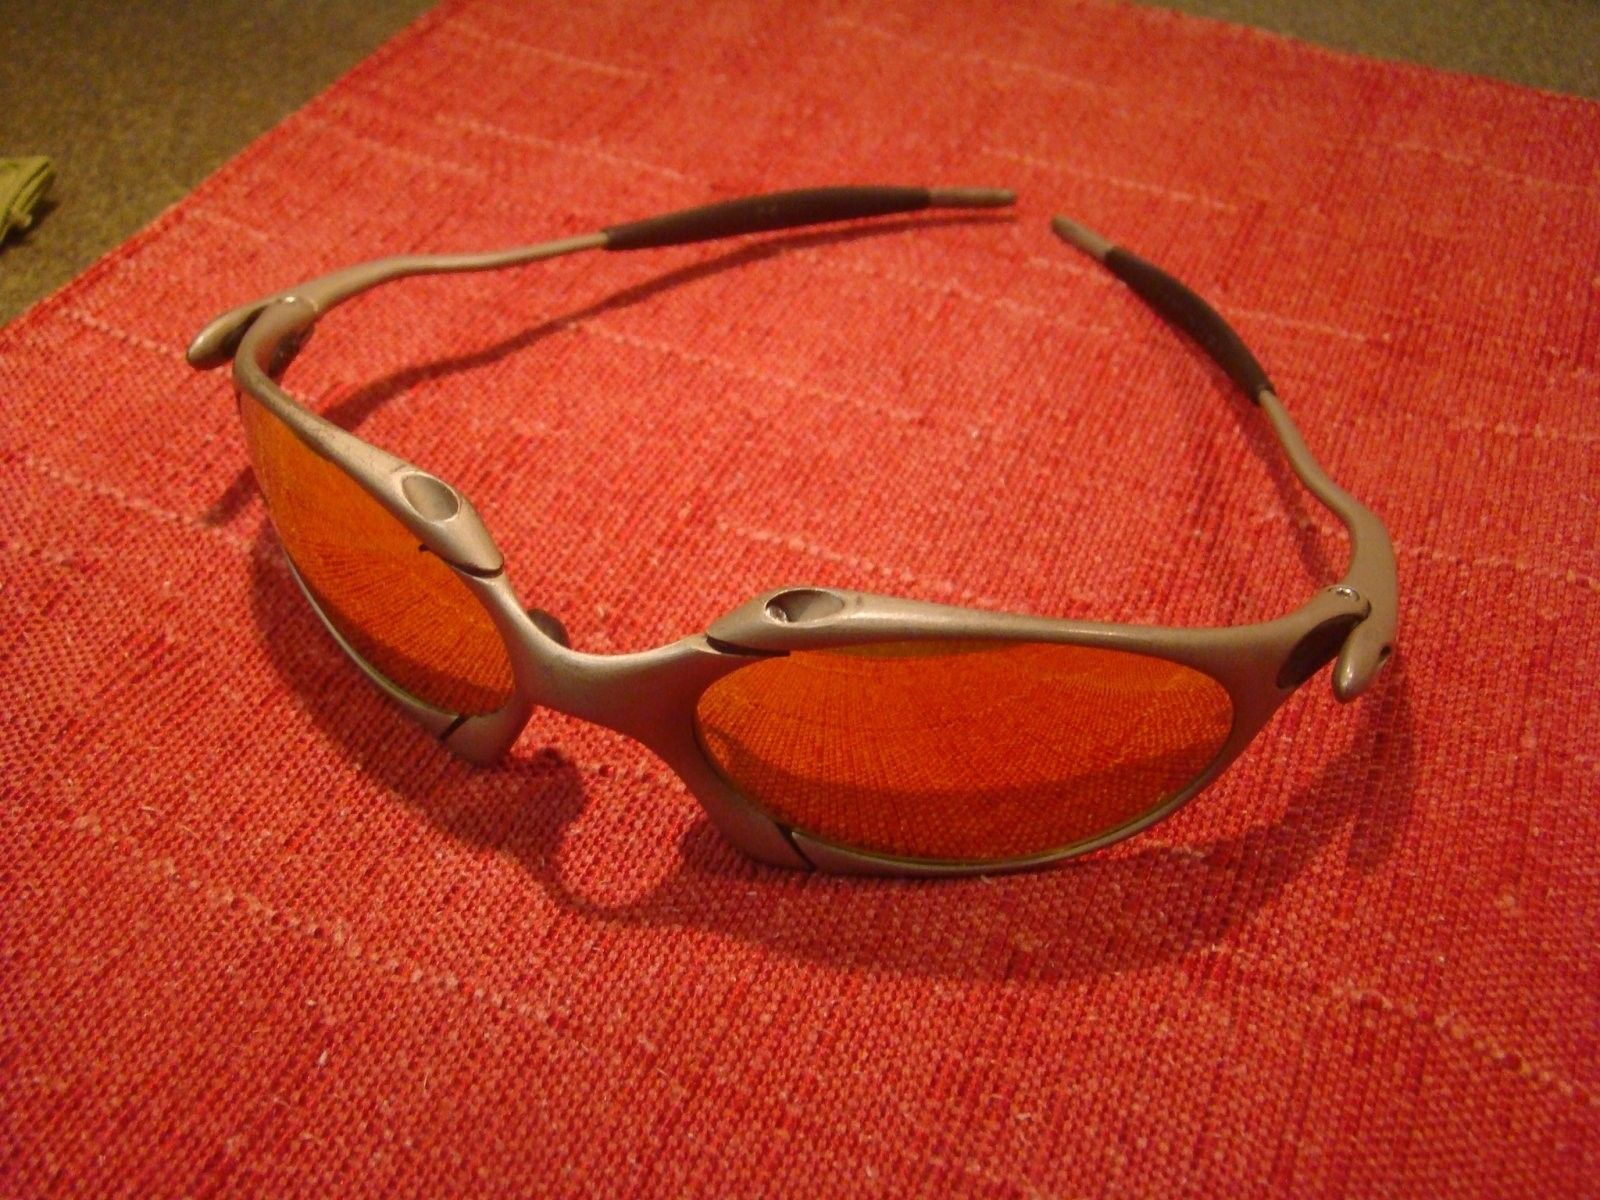 My New R1s And OEM Etched Lenses - DSC02039.JPG